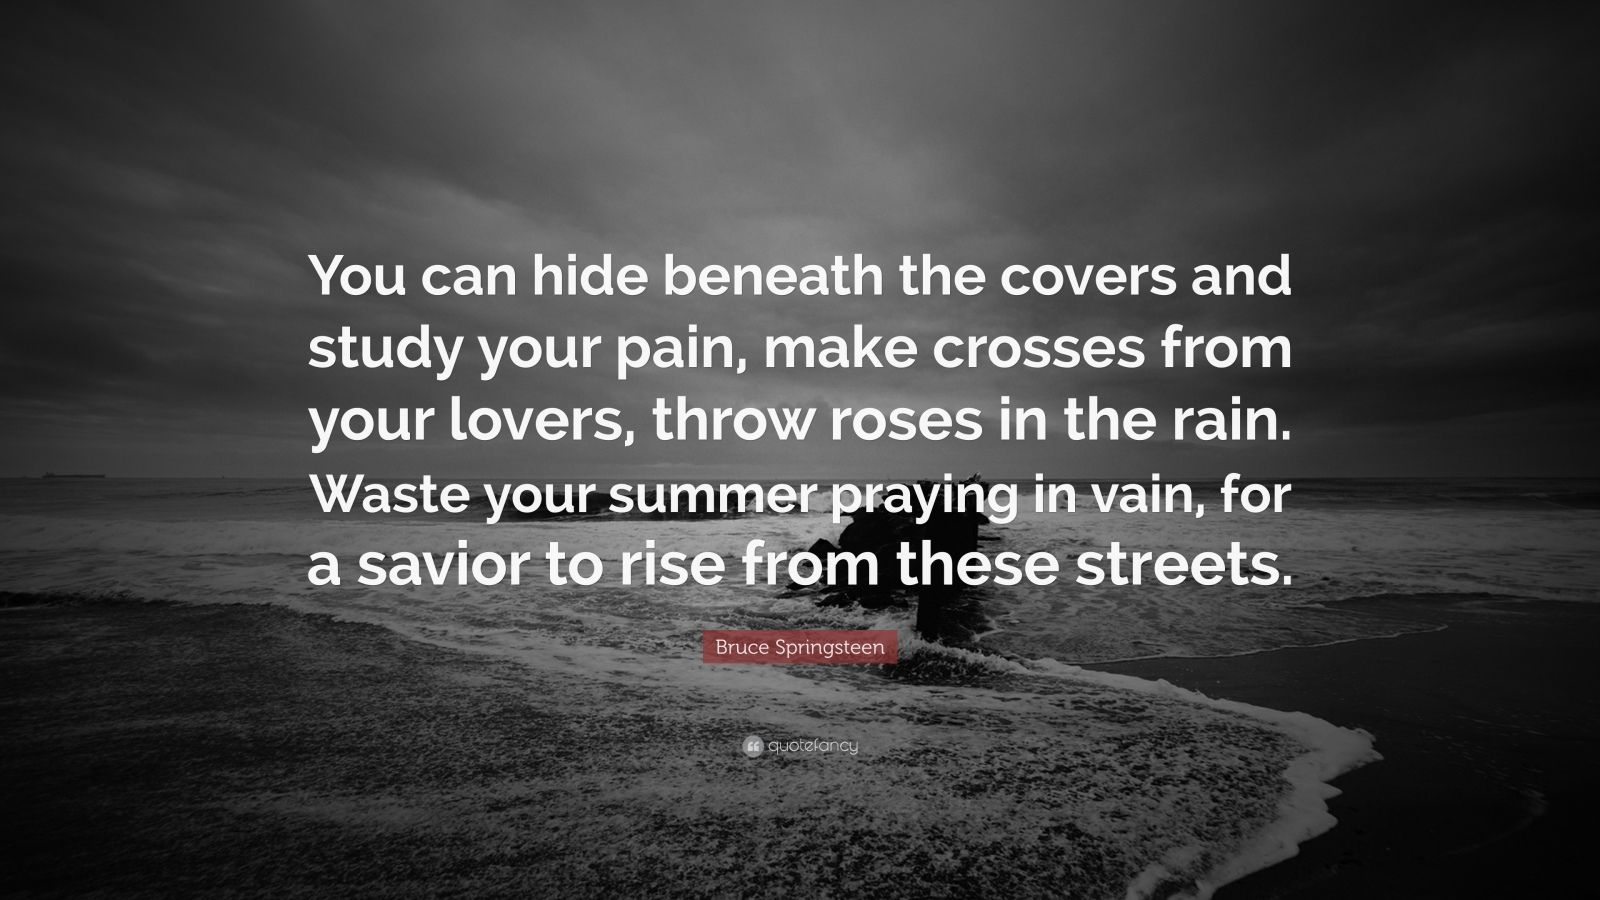 """Bruce Springsteen Quote: """"You can hide beneath the covers and study your pain, make crosses from your lovers, throw roses in the rain. Waste your summer praying in vain, for a savior to rise from these streets."""""""